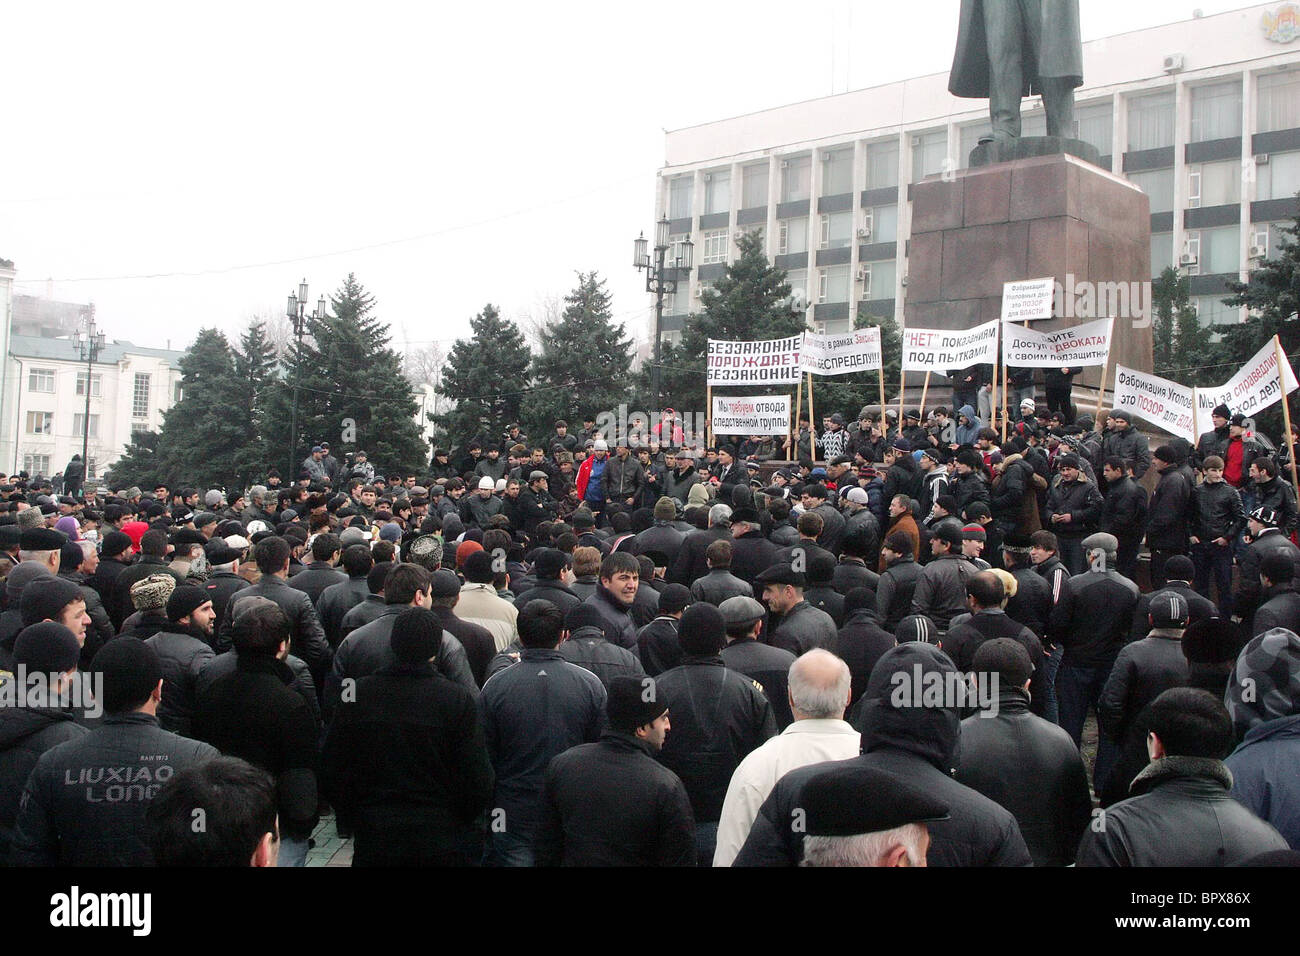 Relatives of chief policeman murder suspects rally in Dagestan - Stock Image